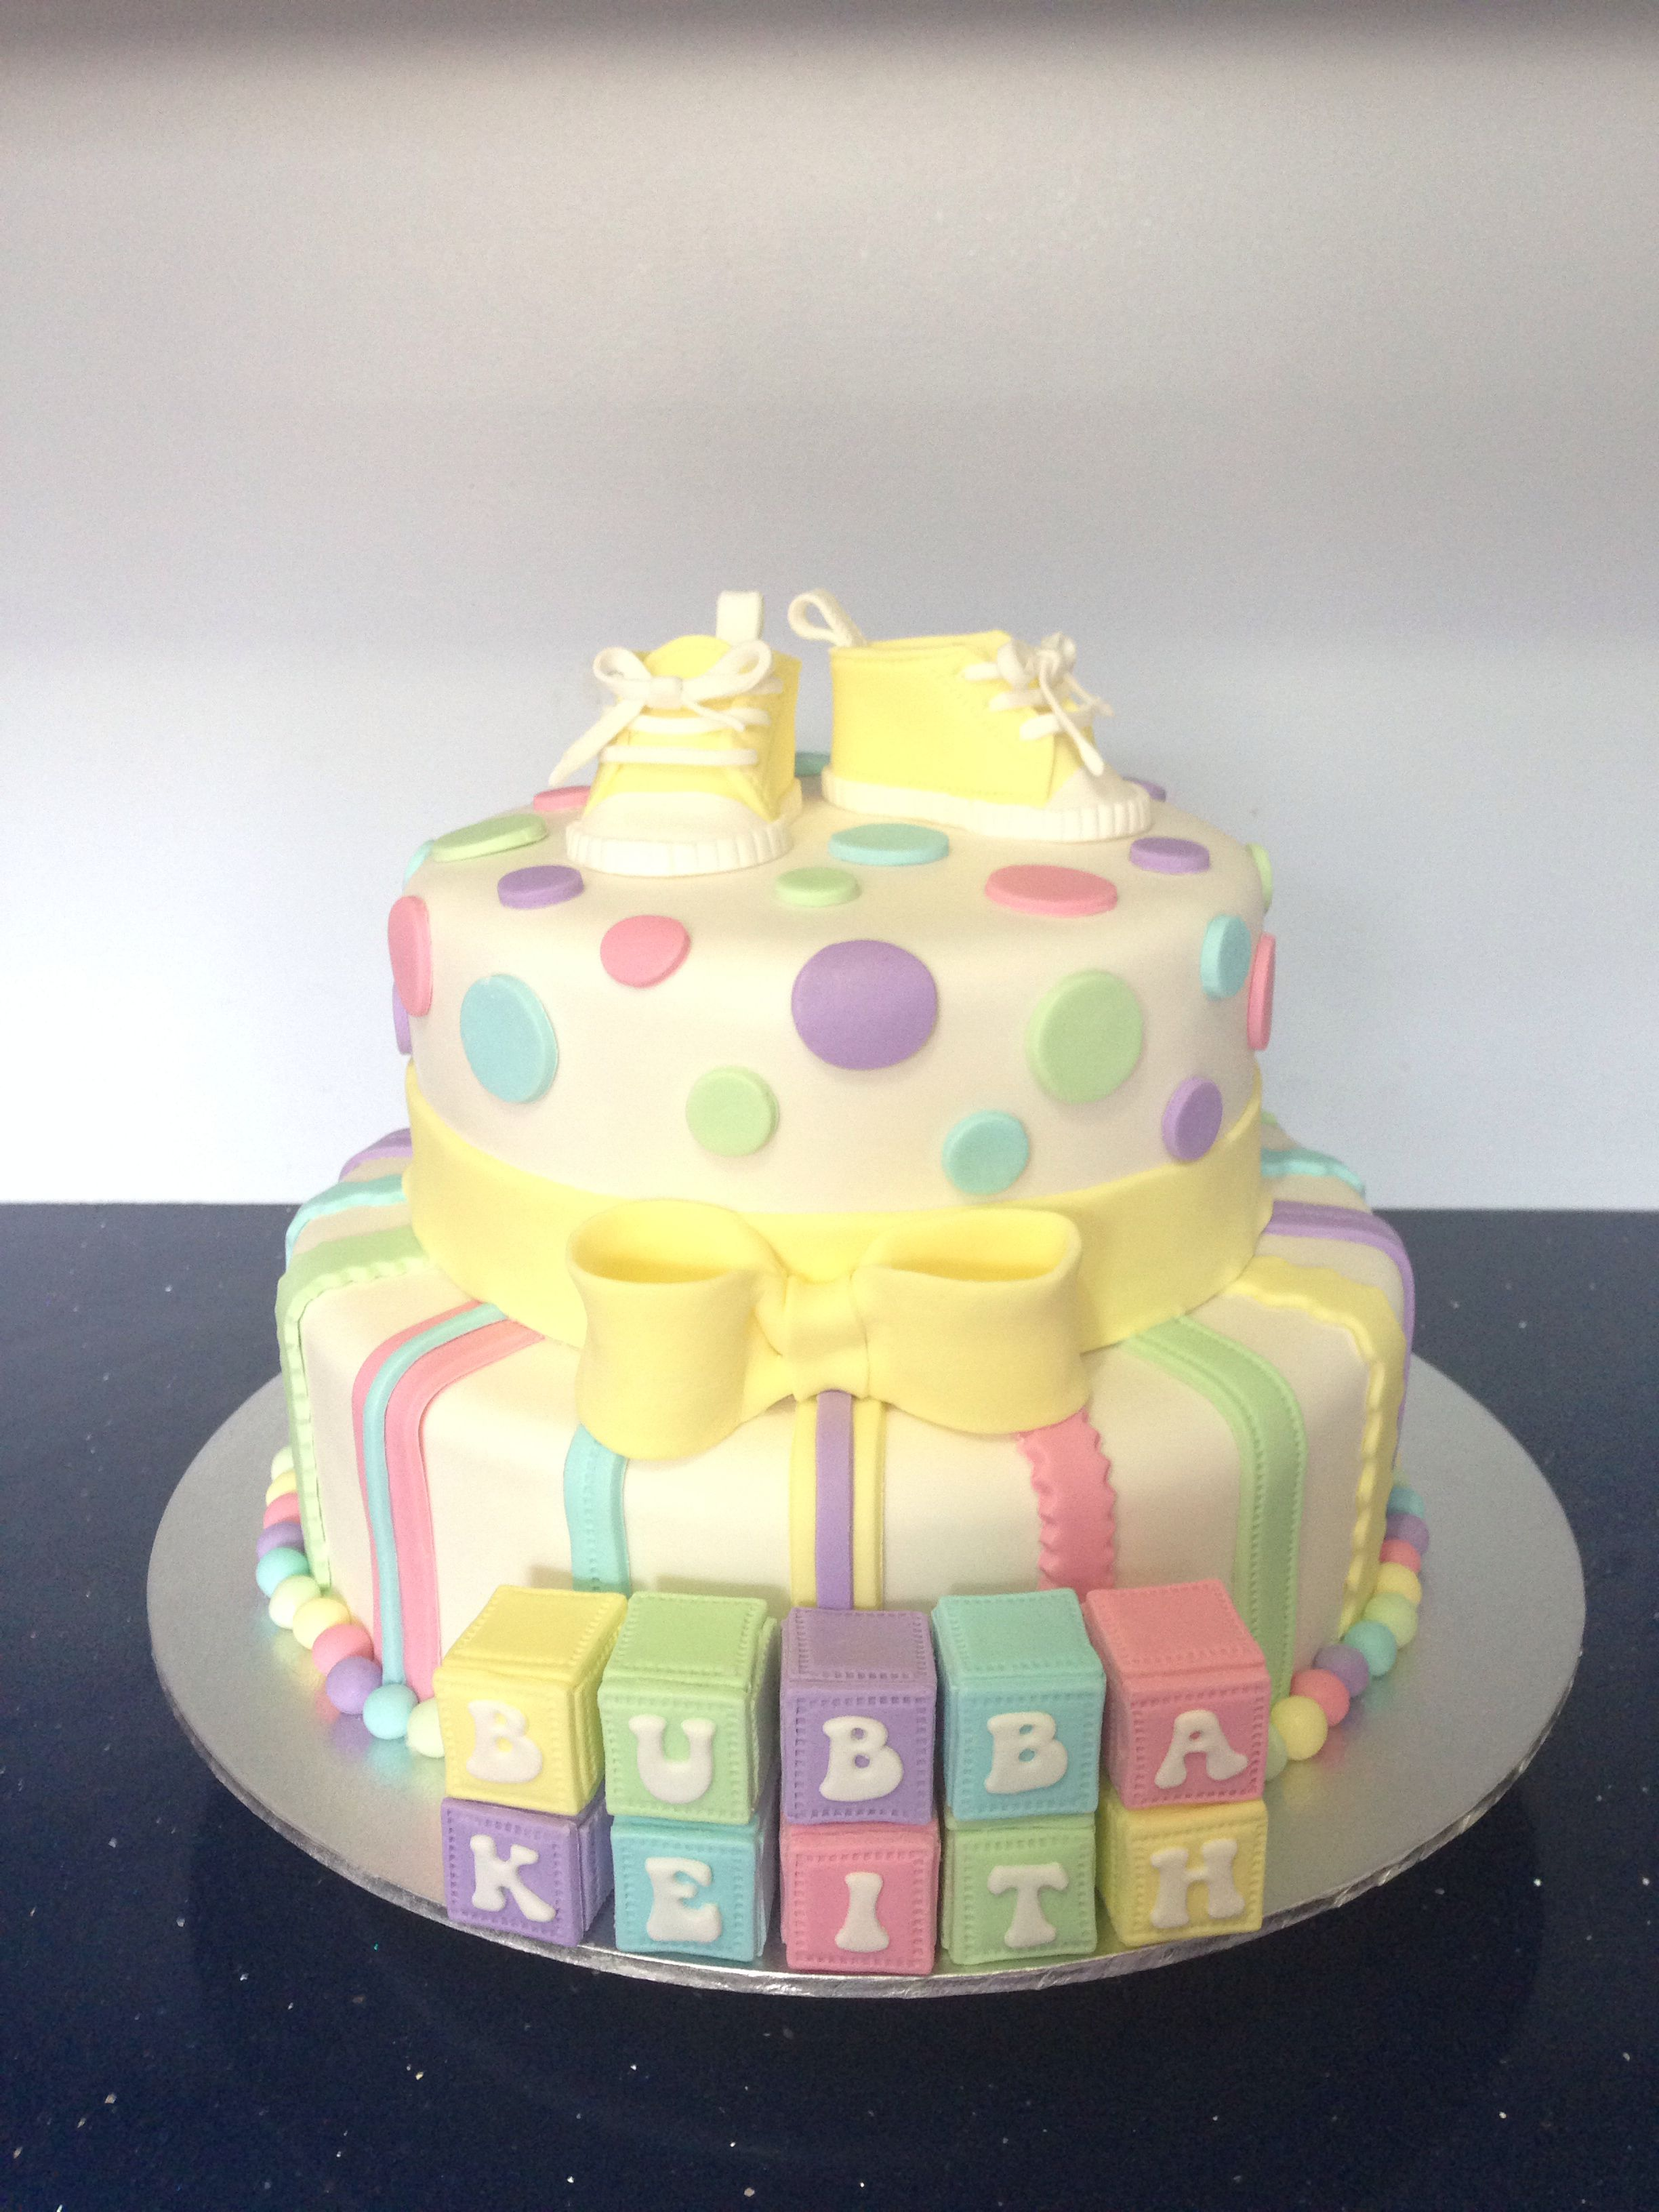 Baby shower cake ideas for unknown gender